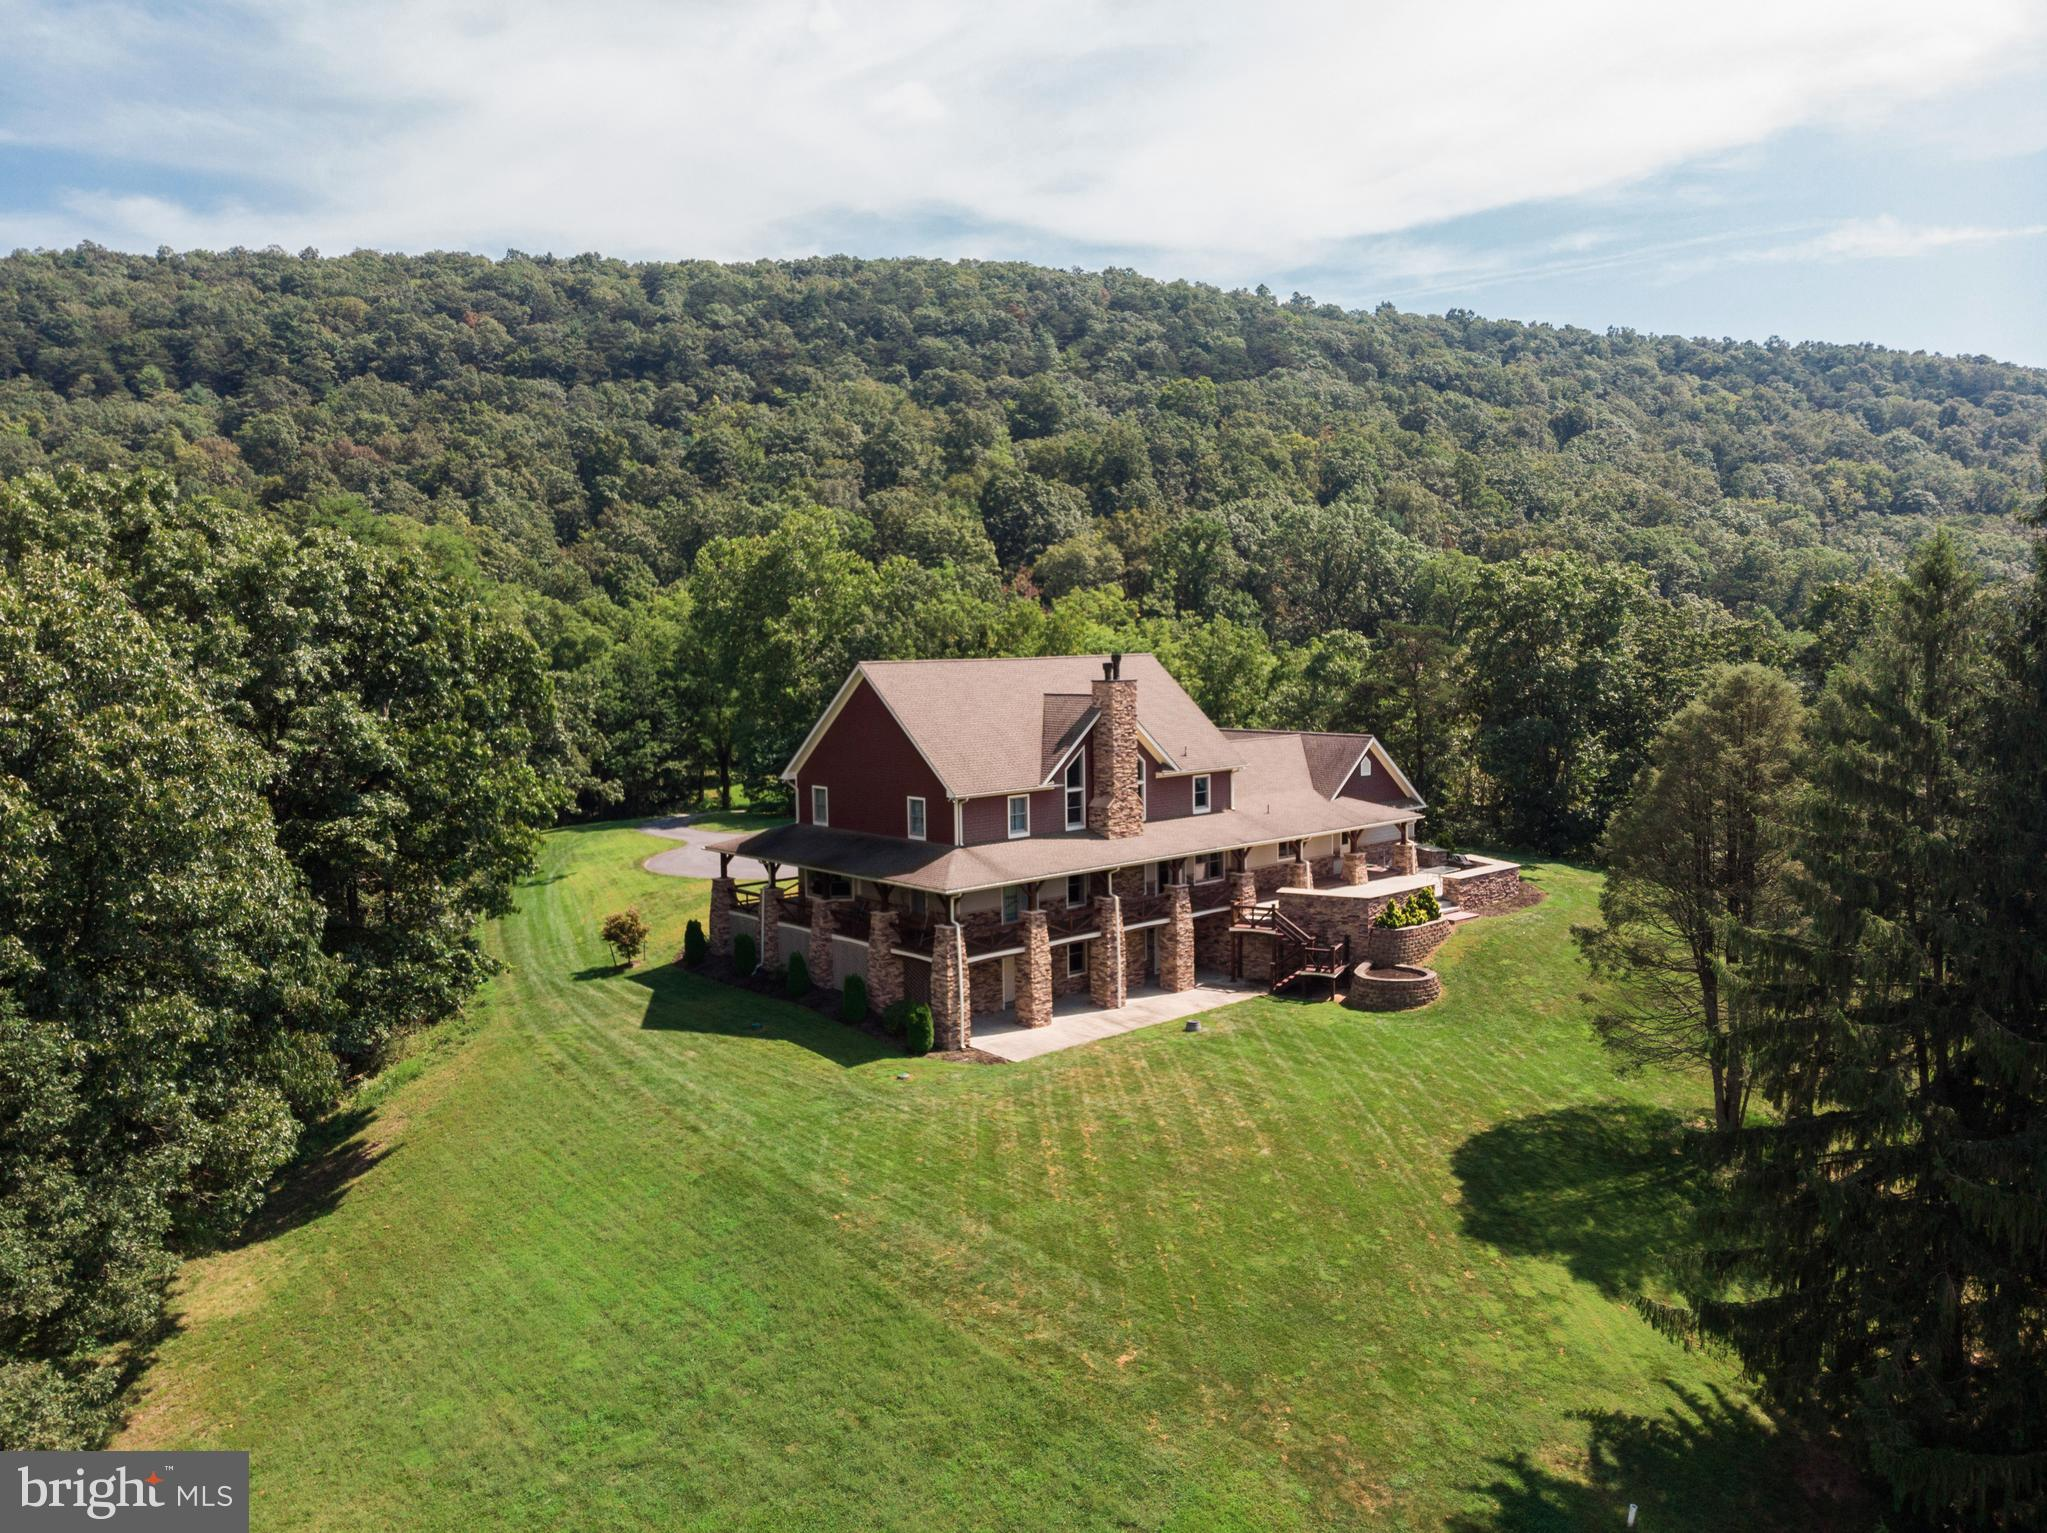 1585 WALTZ ROAD, BIG COVE TANNERY, PA 17212